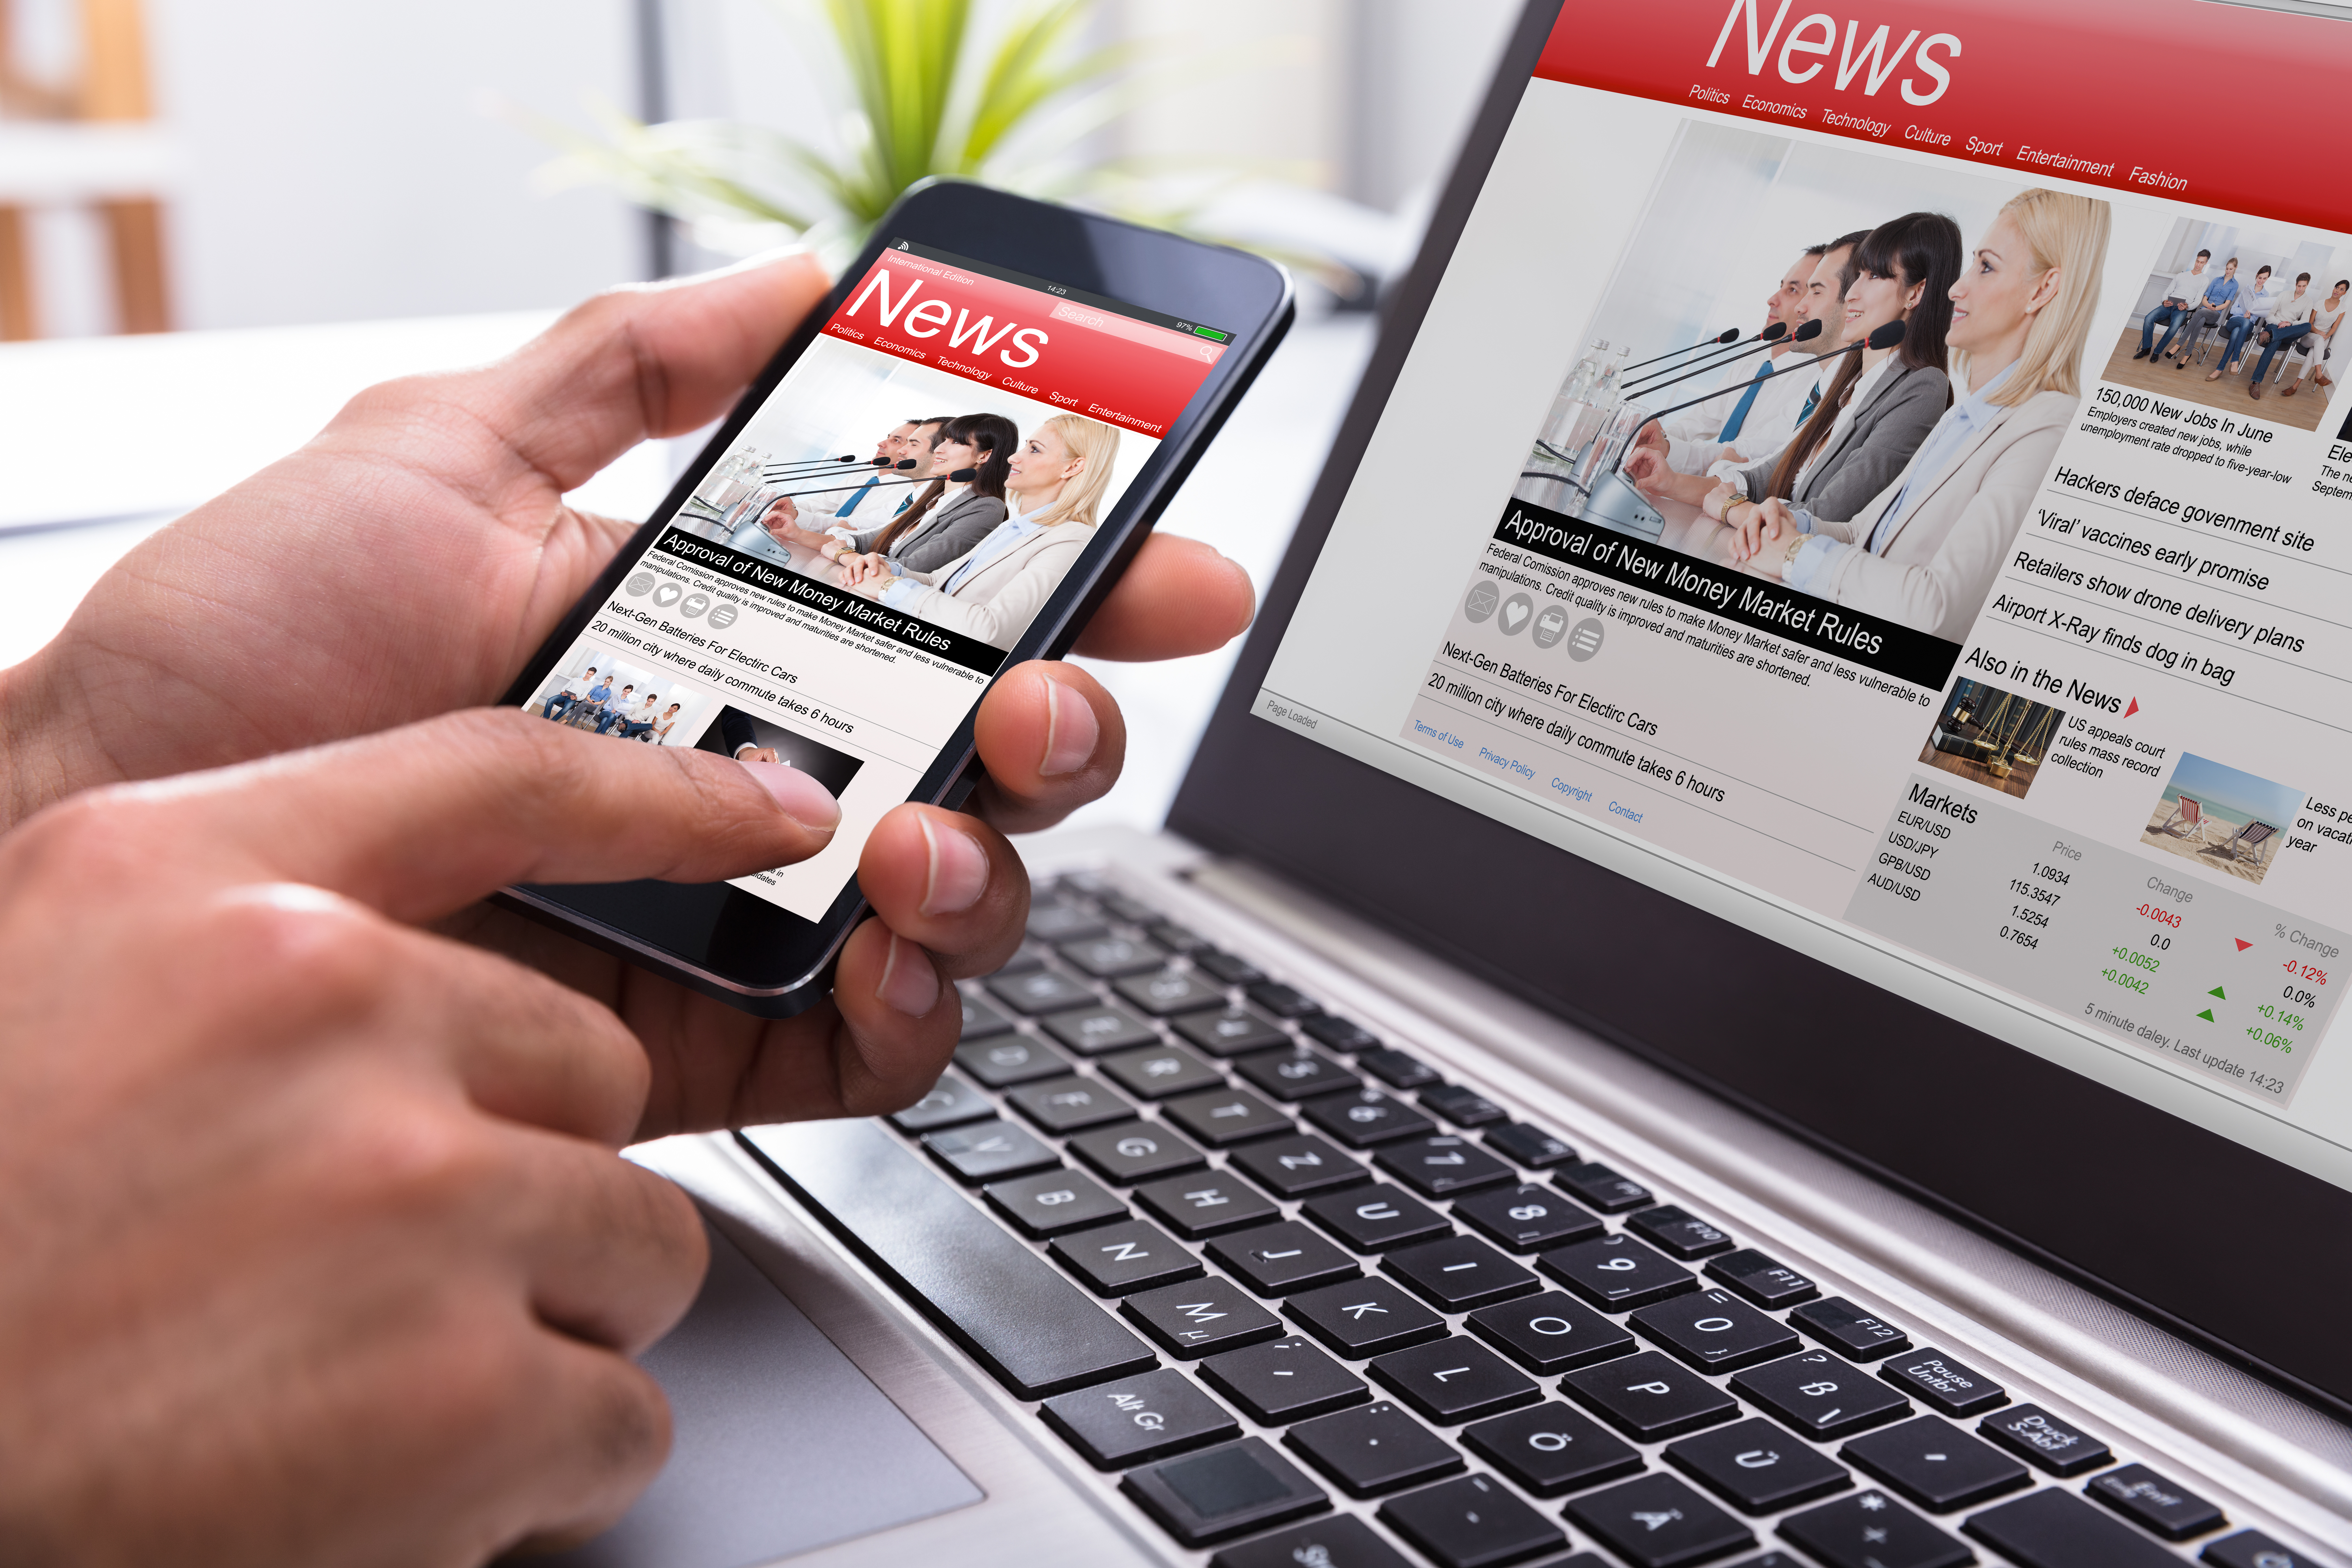 Person holding phone with online news displayed